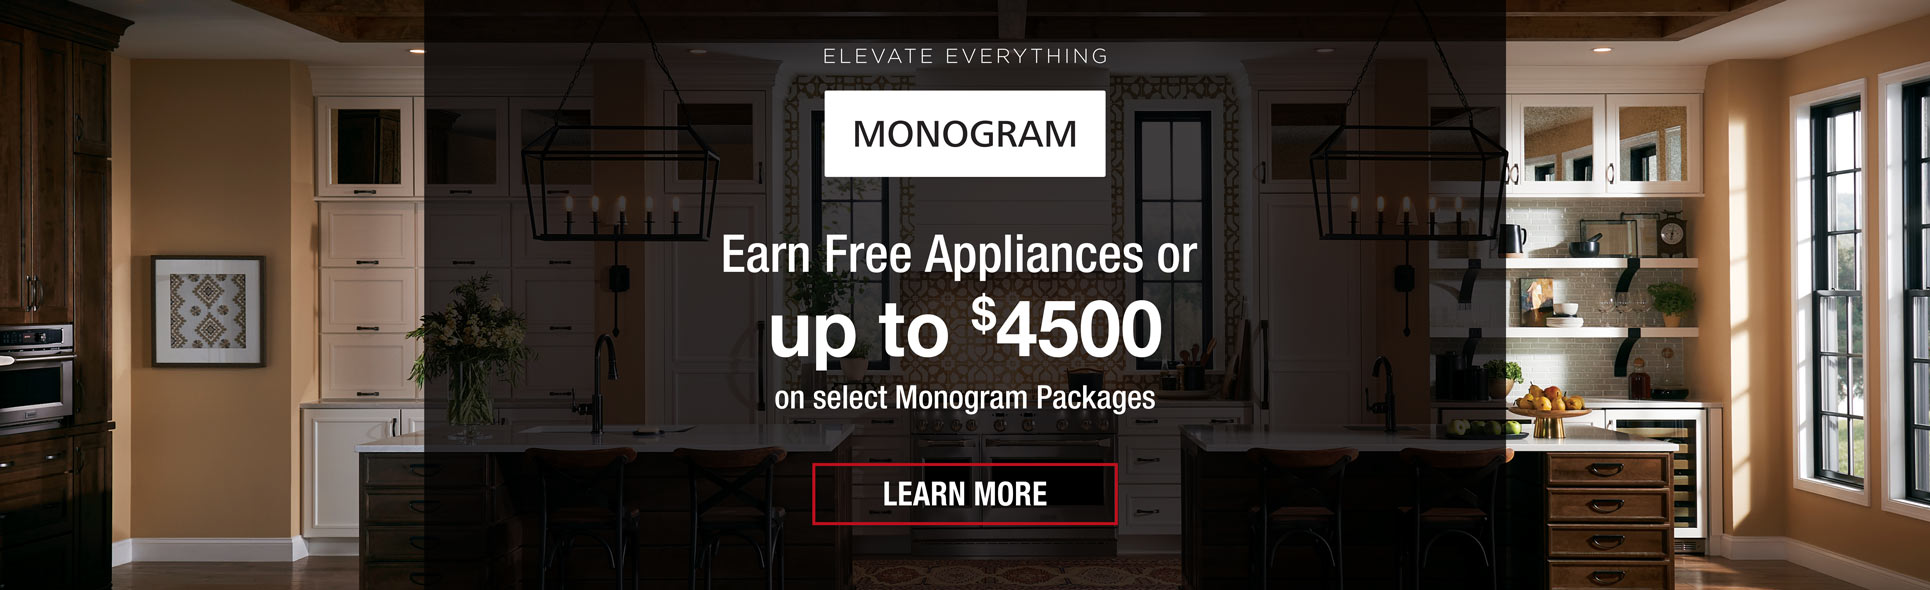 earn free appliances or up to $4500 back on monogram appliances